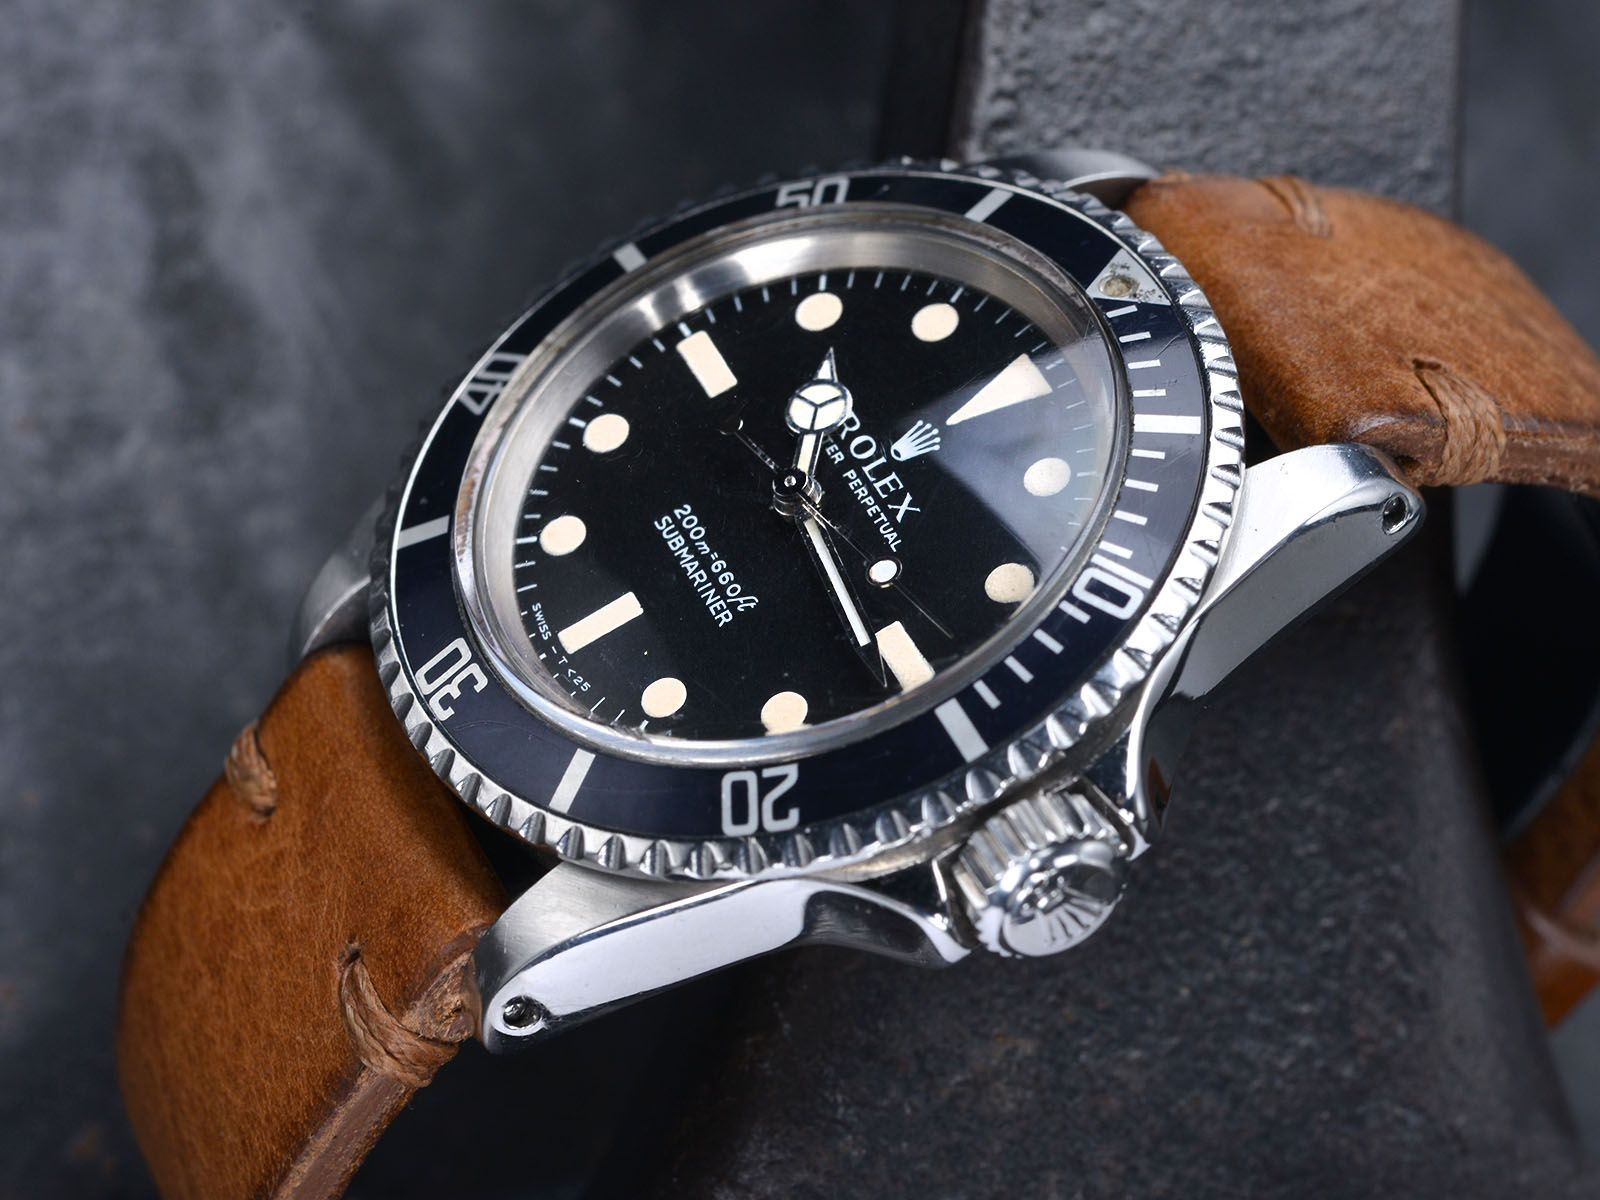 cb0cf67c3a1d 1967 Rolex 5513 mtr s first Submariner …   beautiful art! in 2019…